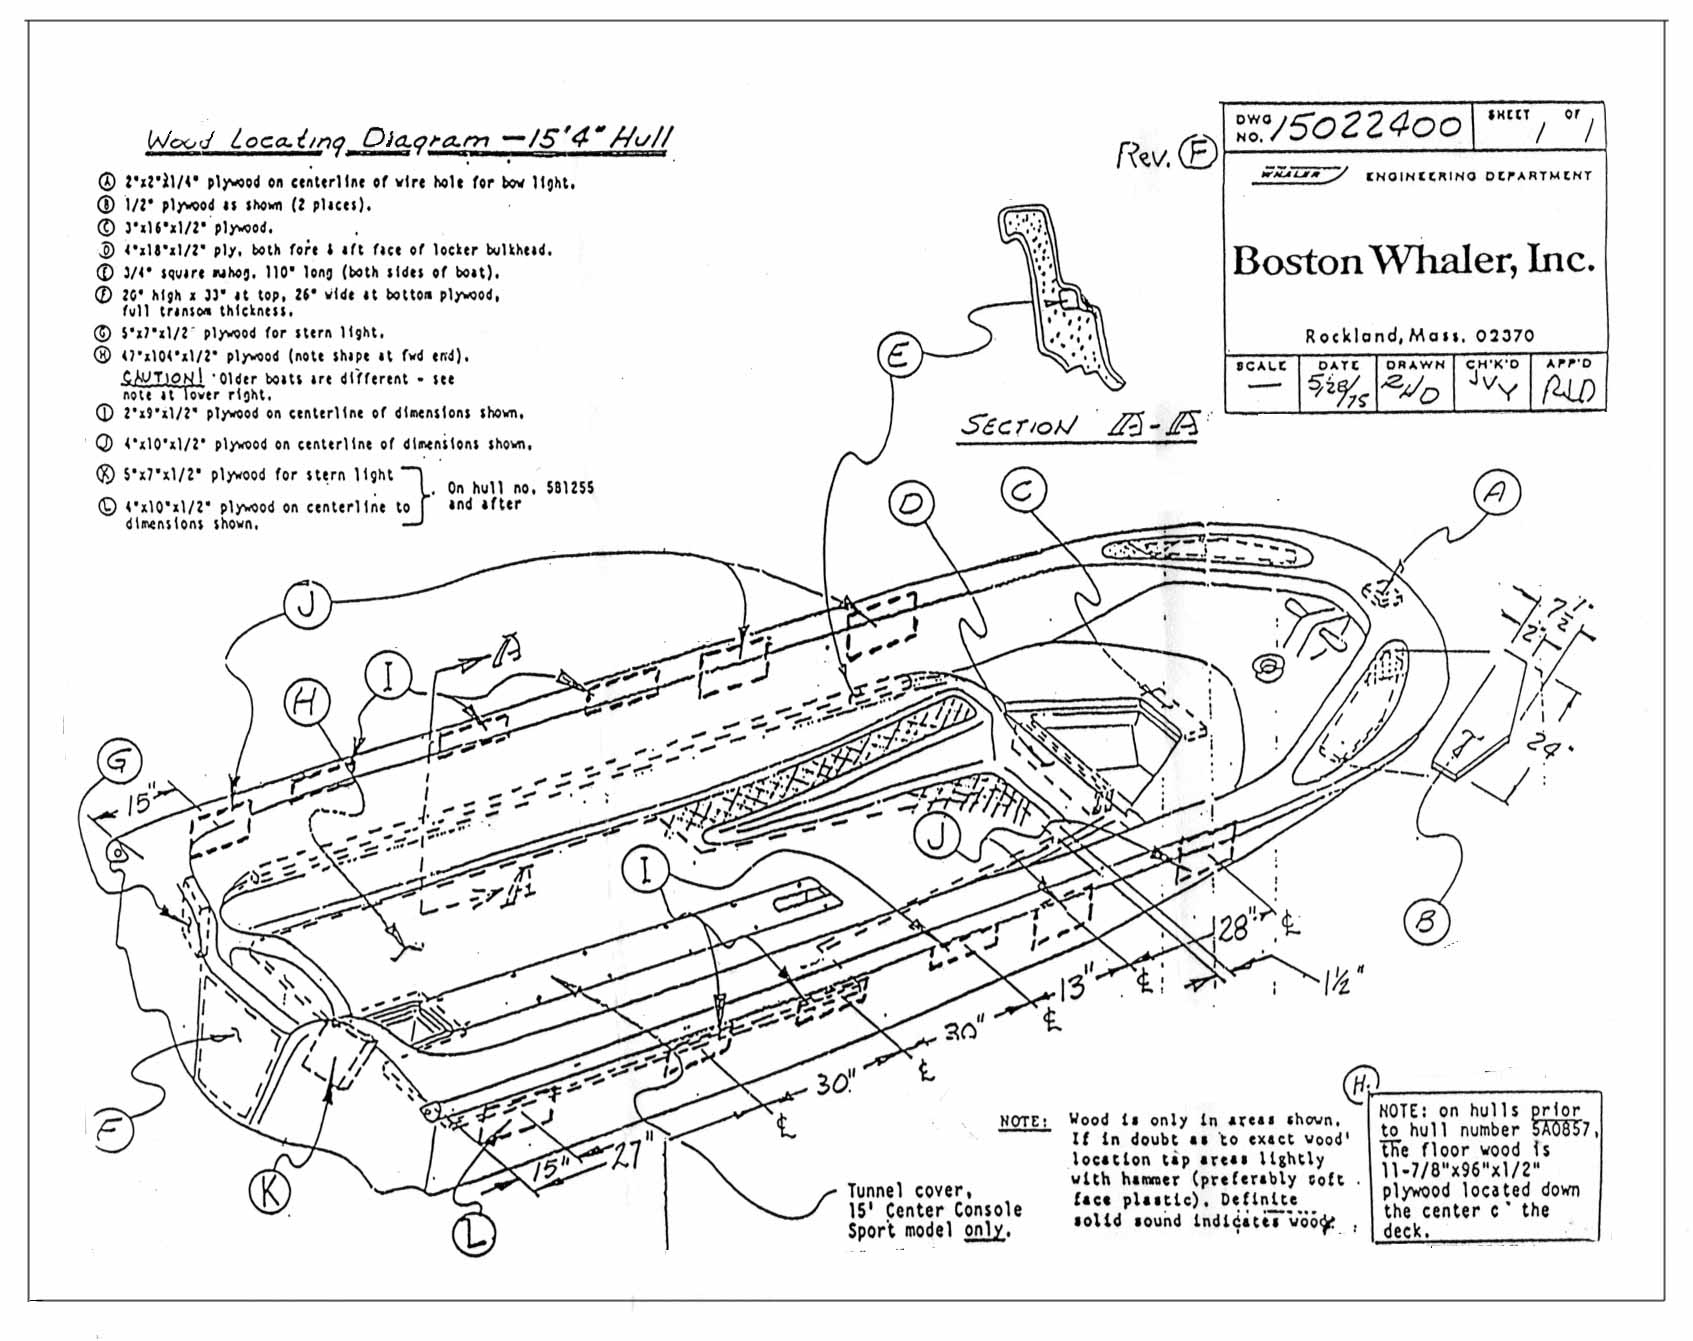 Boat Plans And Dimensions Drawings Software Boatlirder